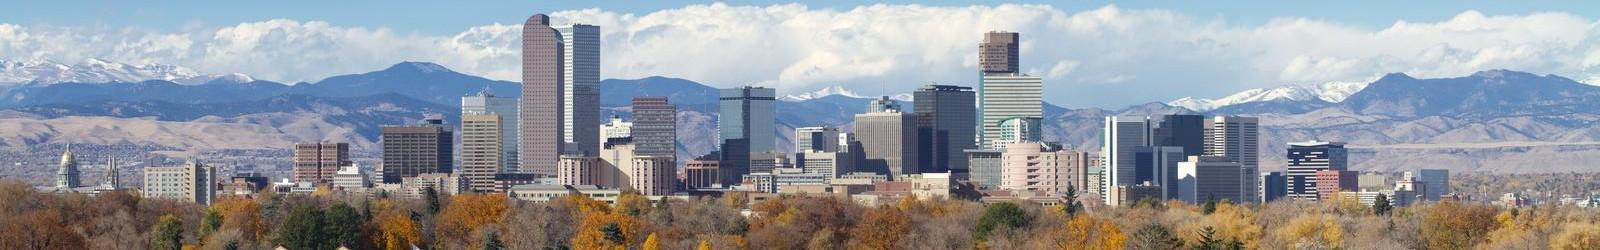 Child or Adolescent Issues therapists in Denver, Colorado